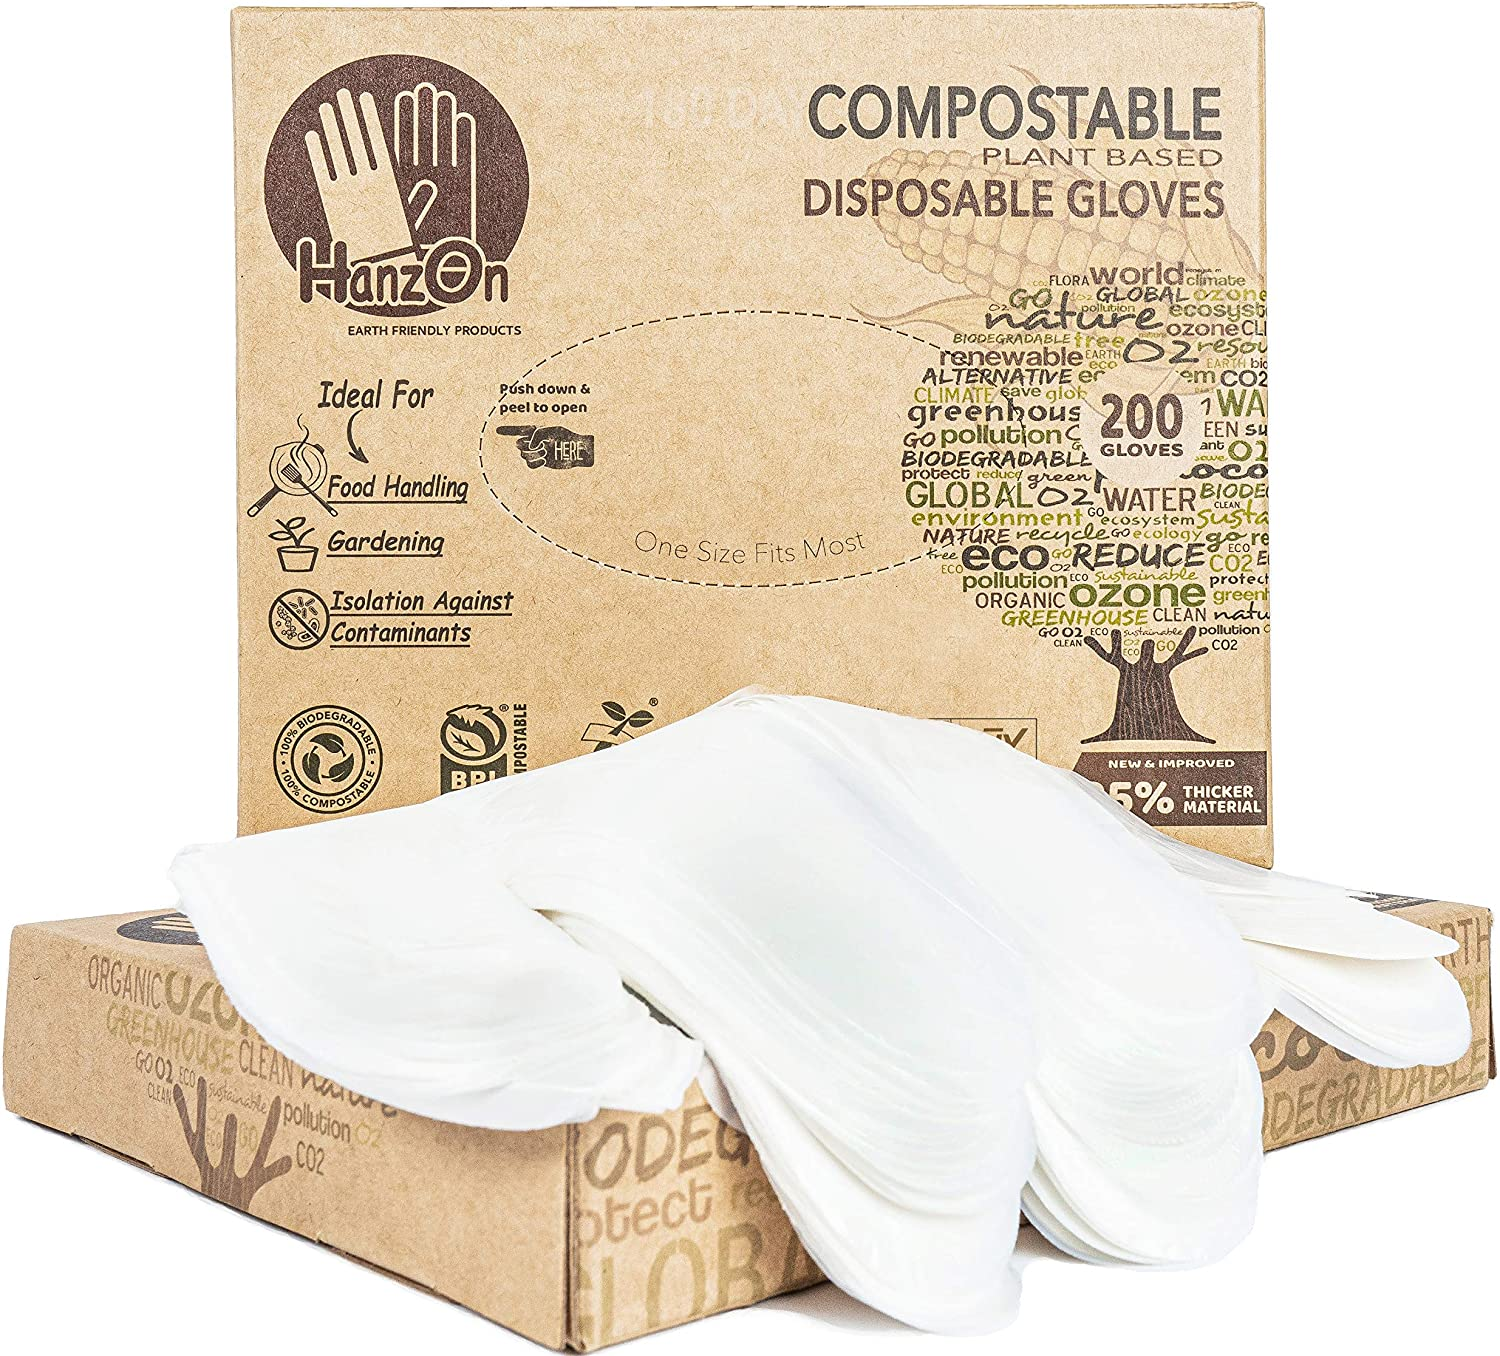 HanzOn 100% Compostable Food Prep Disposable Gloves - 200 pcs Box - Restaurant Grade Safe for Cooking, Handling & Serving - Protective Powder Free - One Size Fits Small Medium & Large Hand